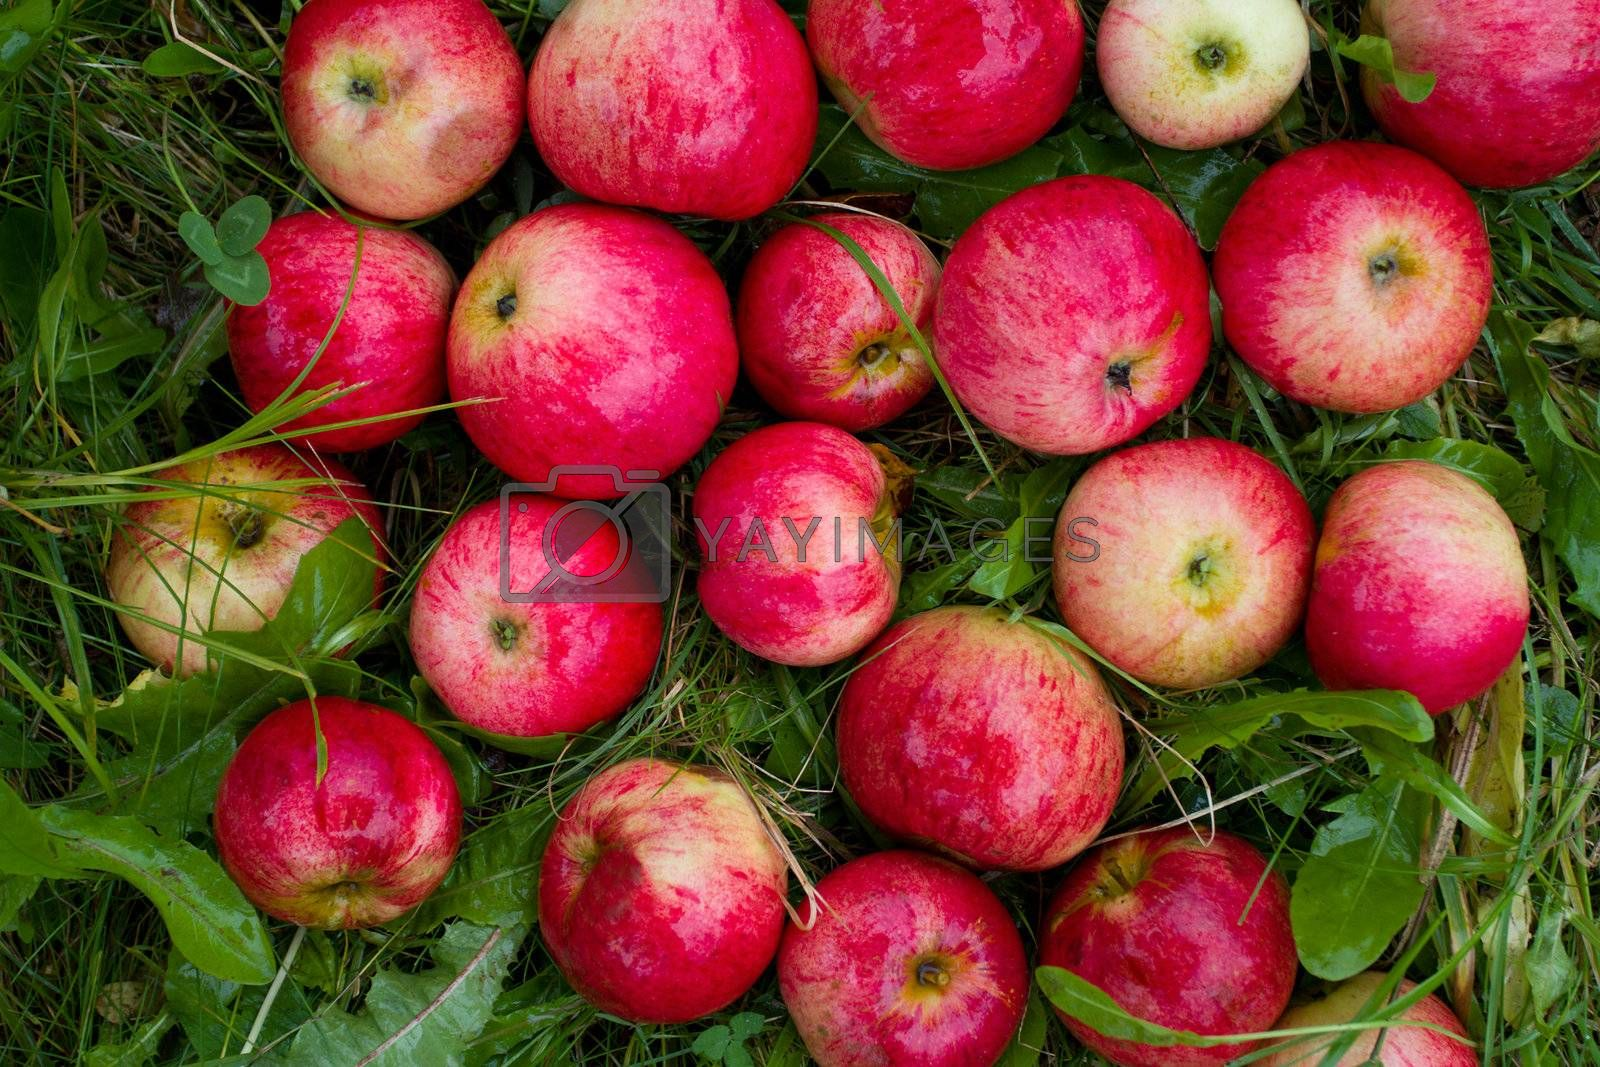 ripe red apples in green grass